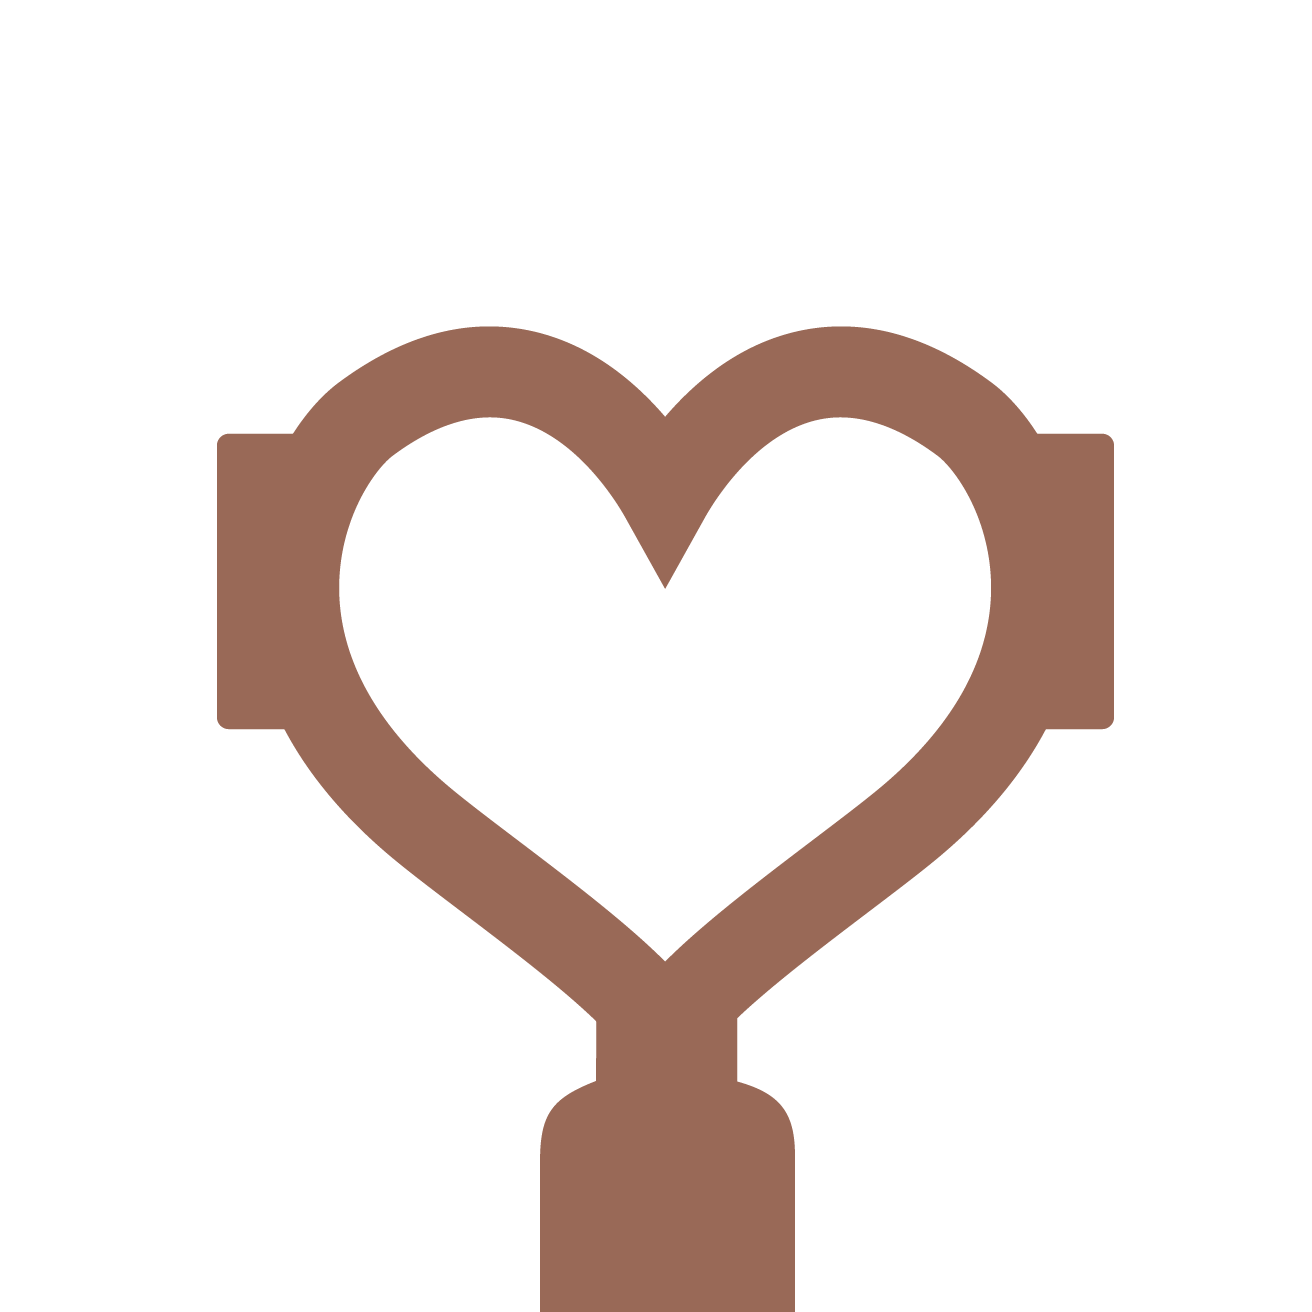 Green Bean - Unroasted 1kg Camocim Pulped Natural